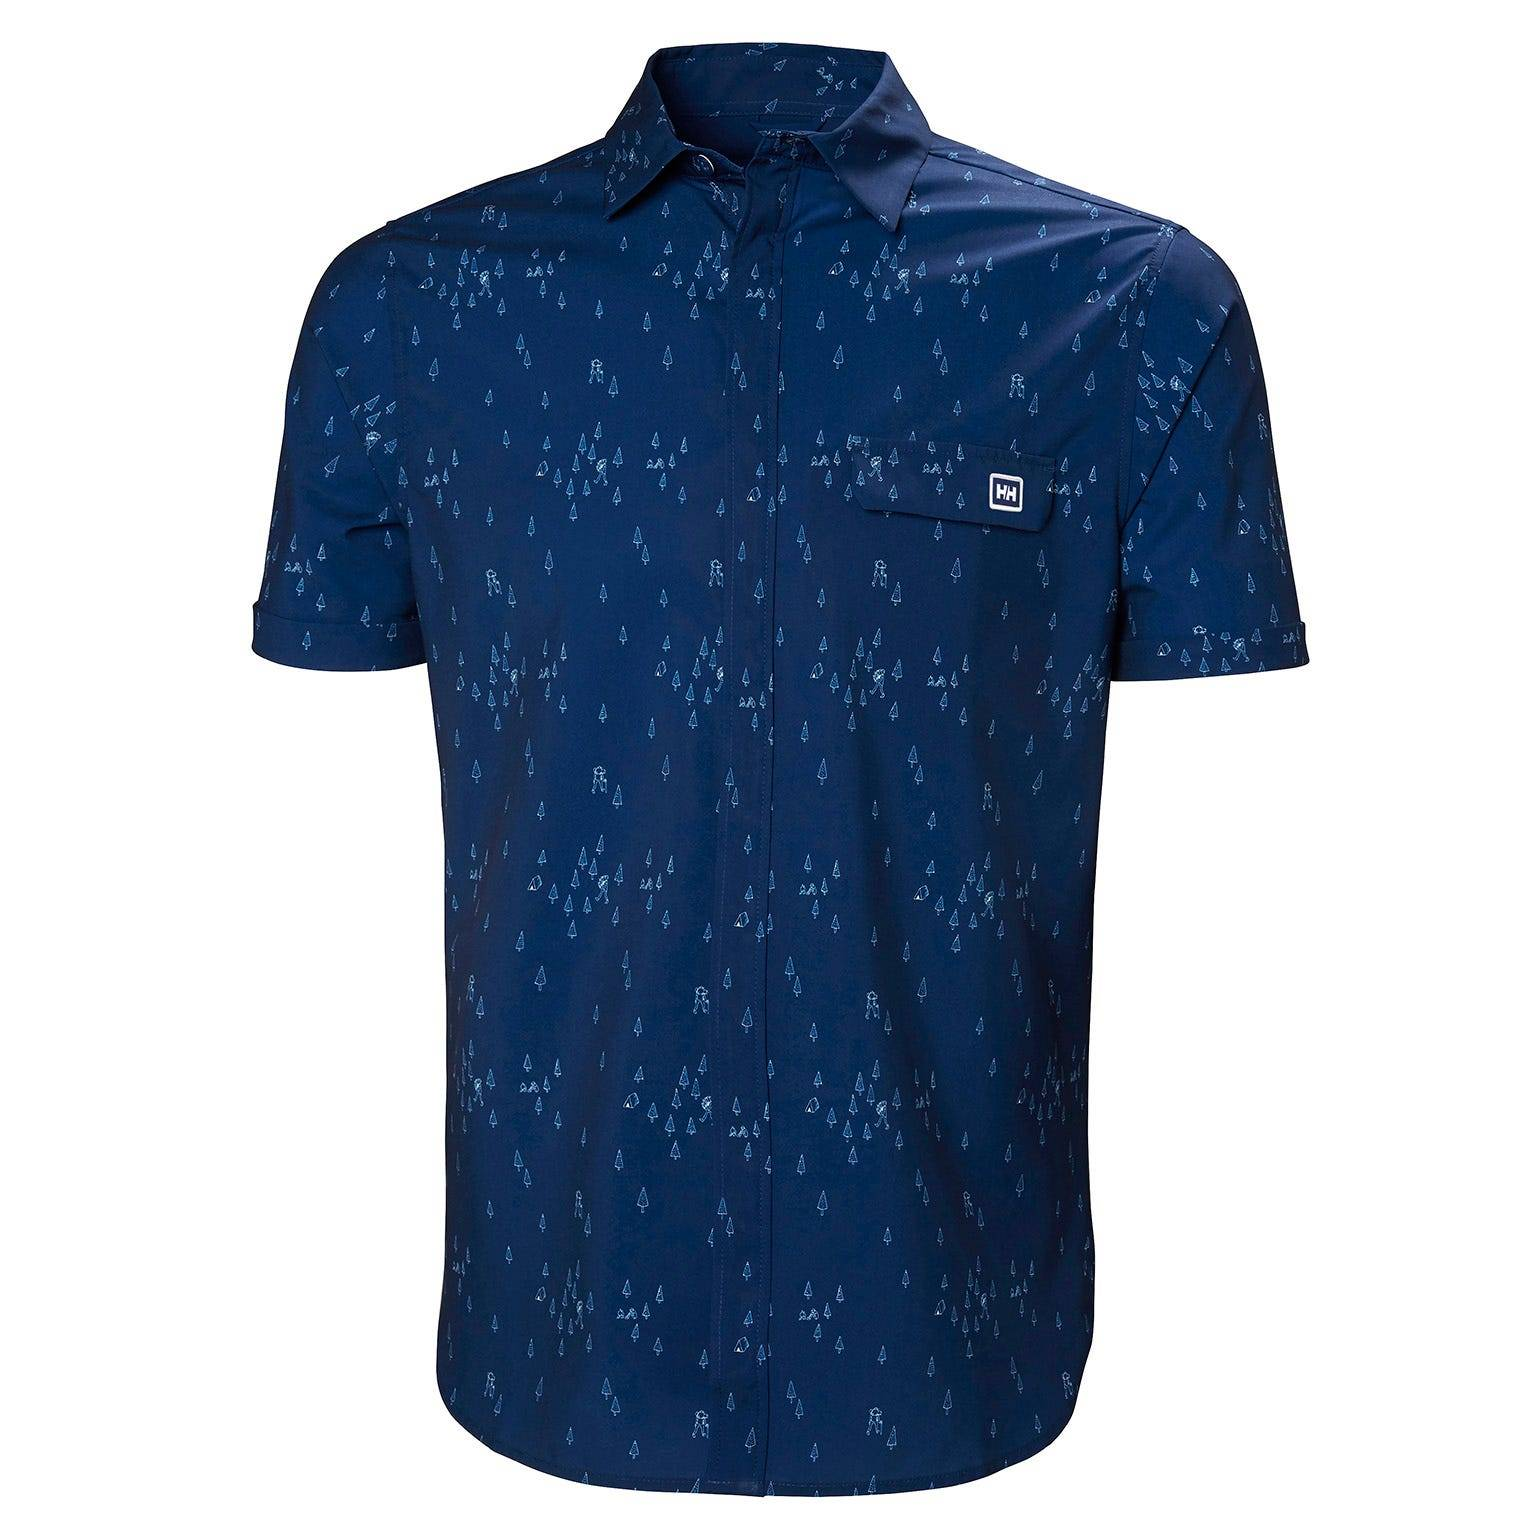 Helly Hansen Oya Shirt Mens Midlayer Blue M